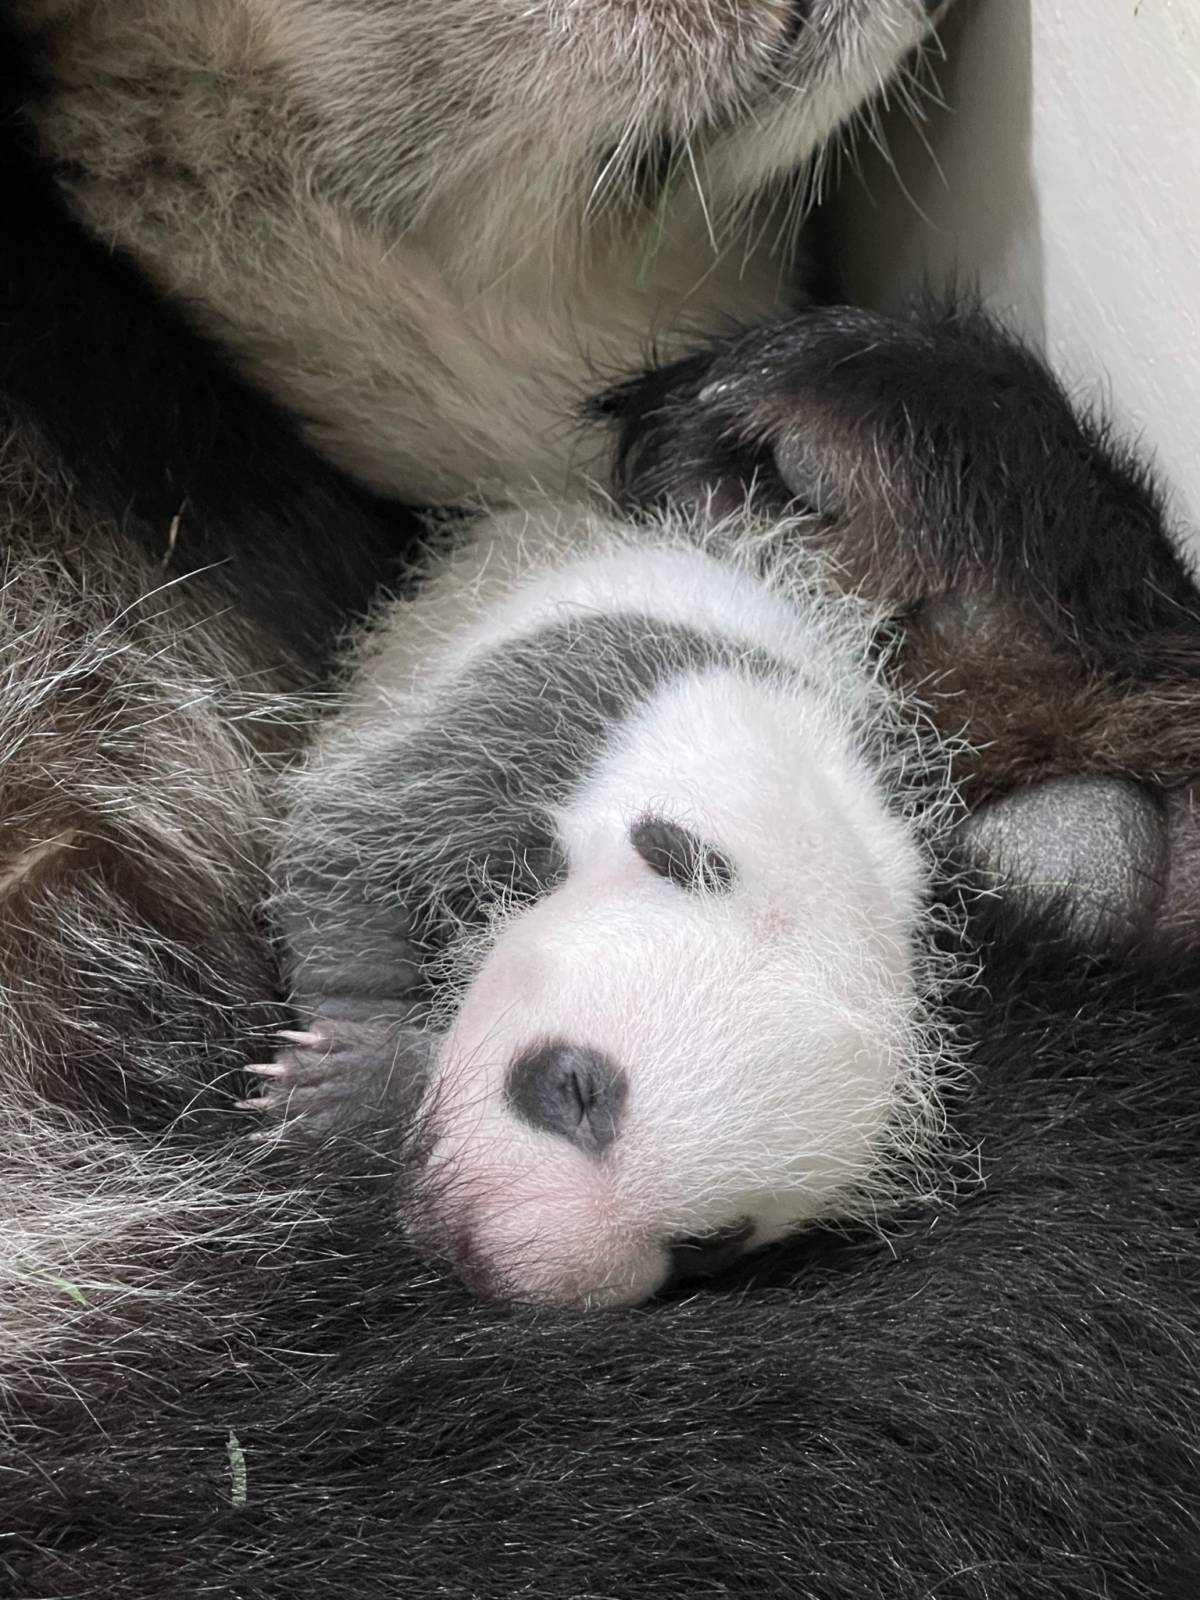 SINGAPORE'S FIRST GIANT PANDA CUB IS A HEALTHY BABY BOY